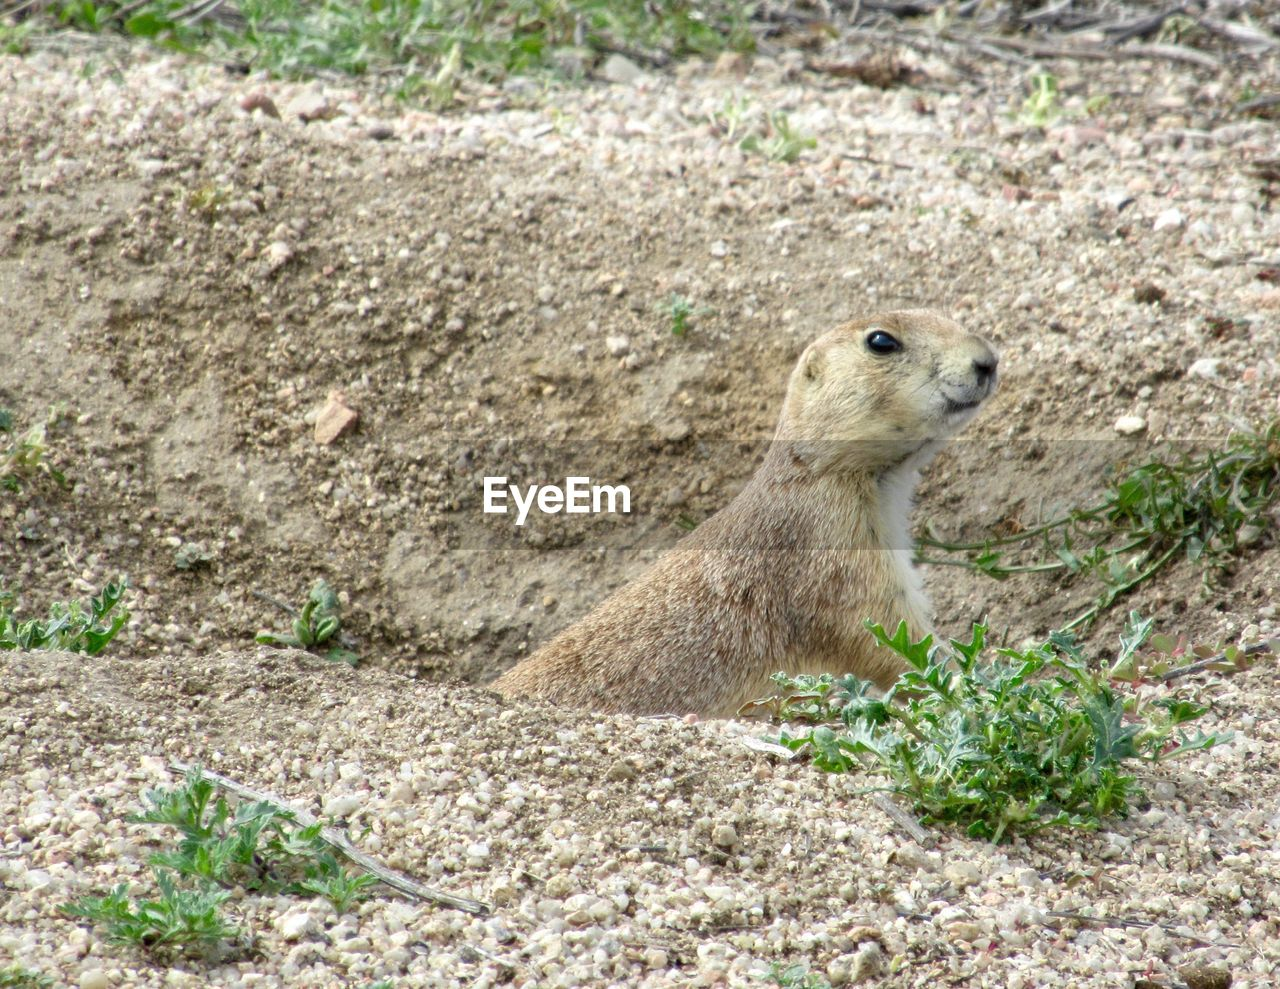 animal, animal themes, animal wildlife, one animal, animals in the wild, mammal, land, no people, rodent, nature, vertebrate, field, day, plant, high angle view, full length, close-up, outdoors, looking, alertness, herbivorous